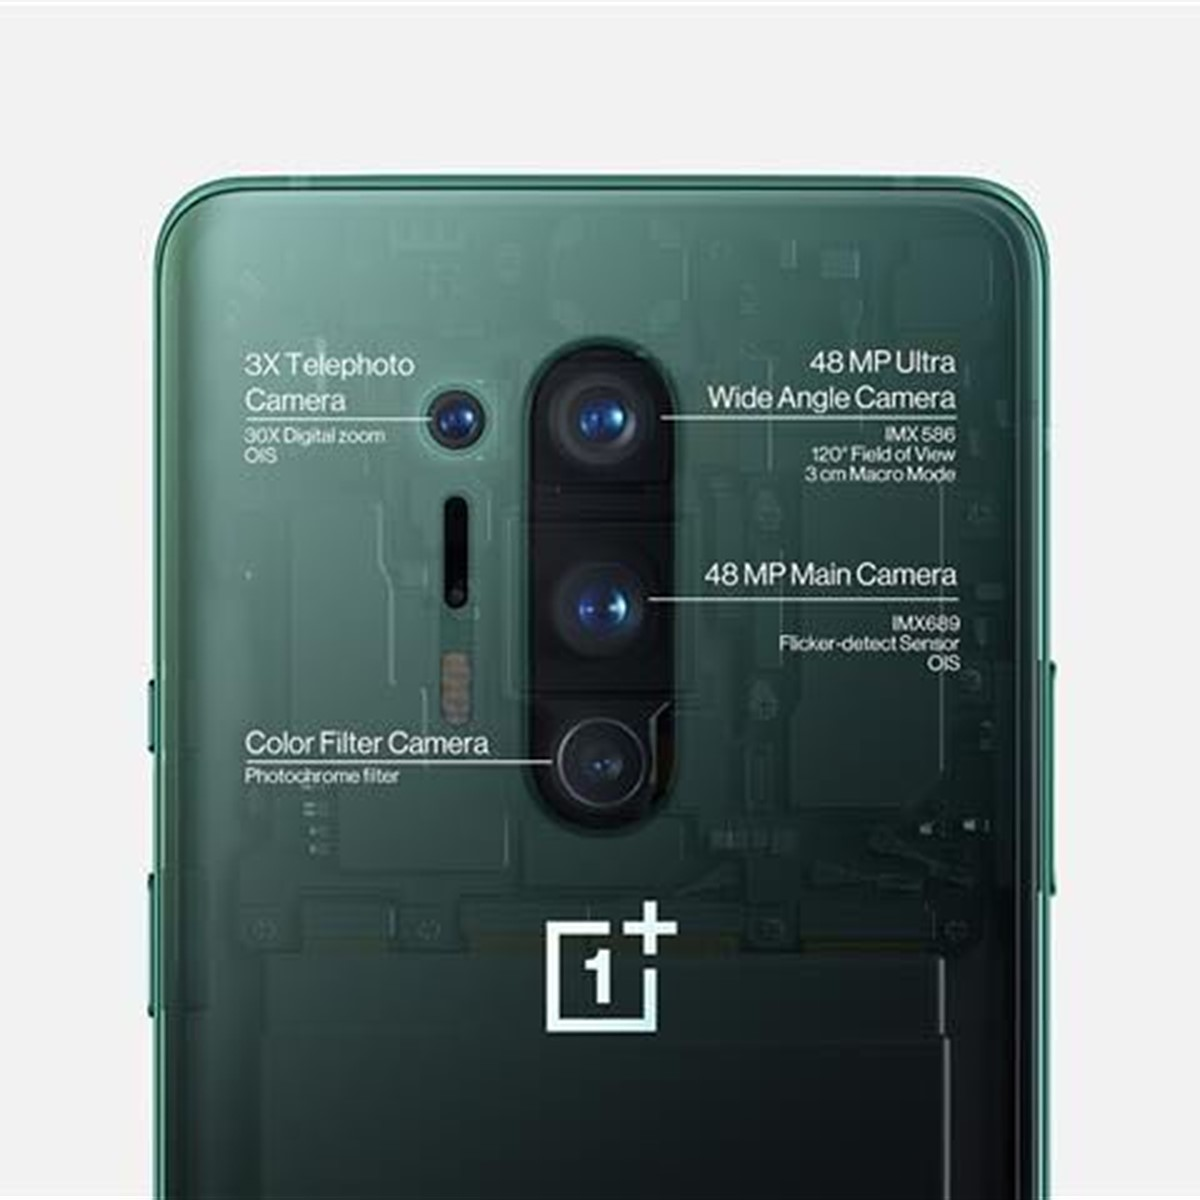 Oneplus Is Disabling The Near Infrared Color Filter Camera On Its 8pro Smartphone Over Privacy Concerns Digital Photography Review